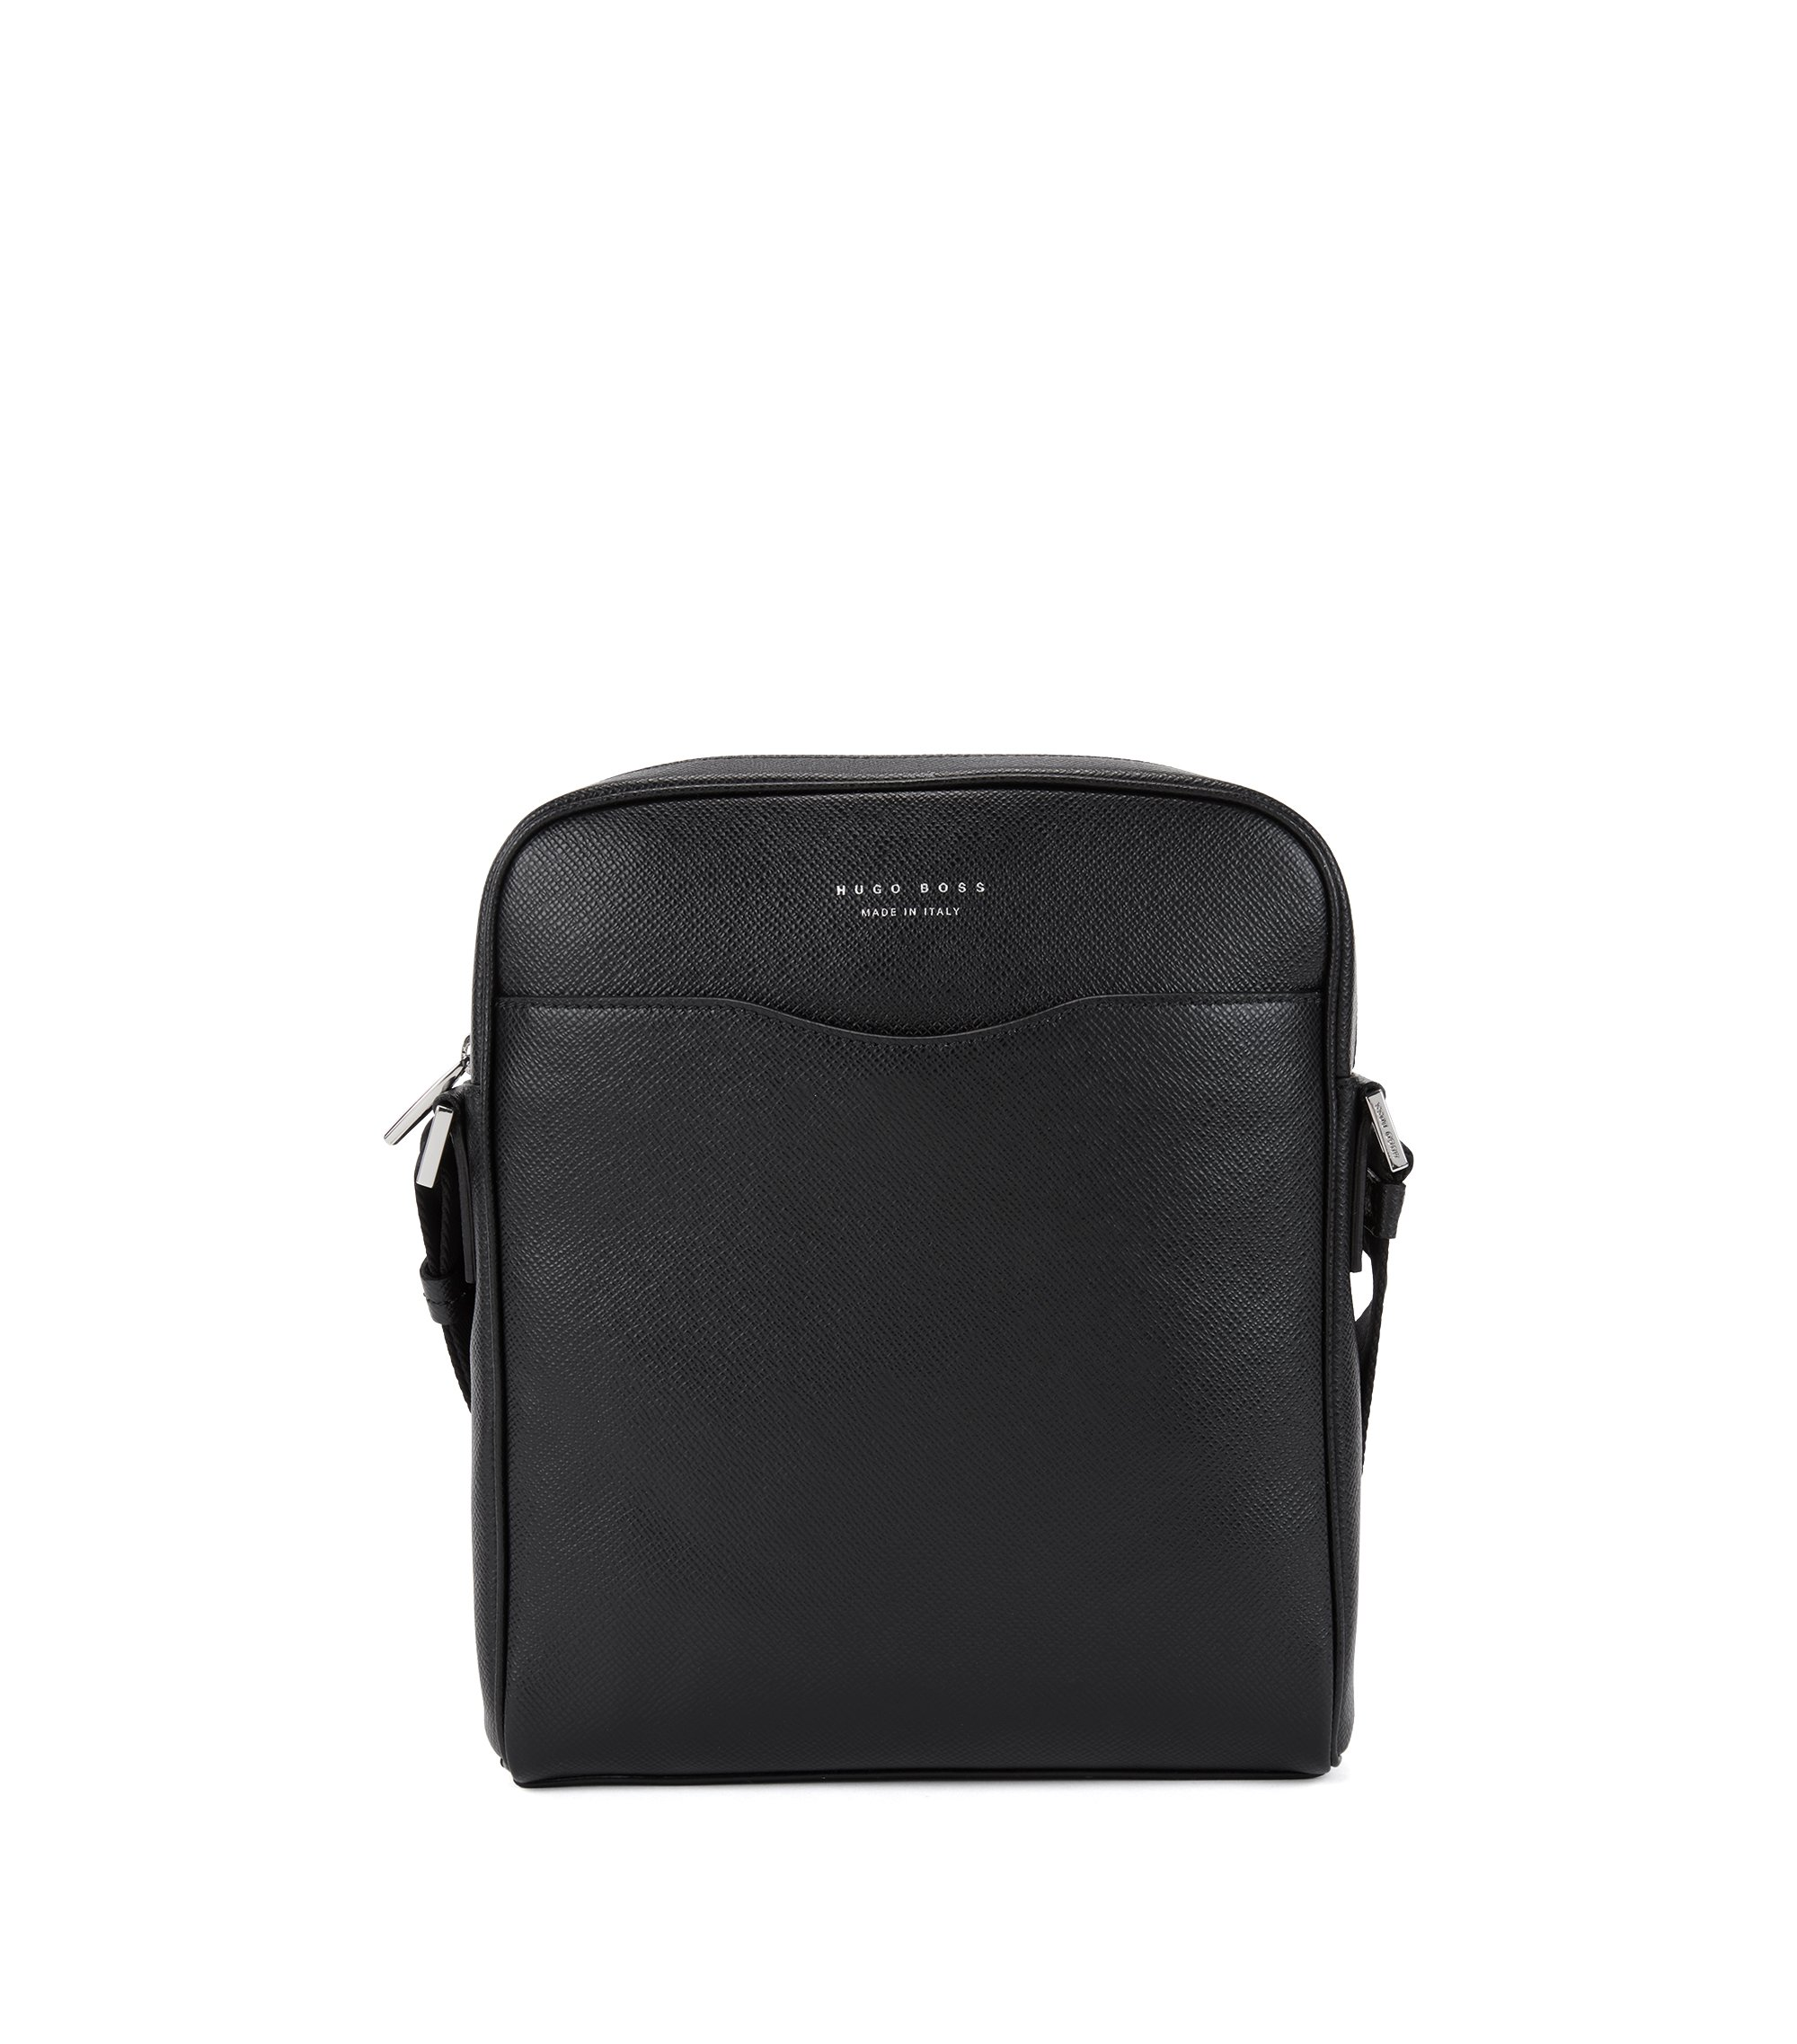 Signature Collection reporter bag in palmellato leather, Black